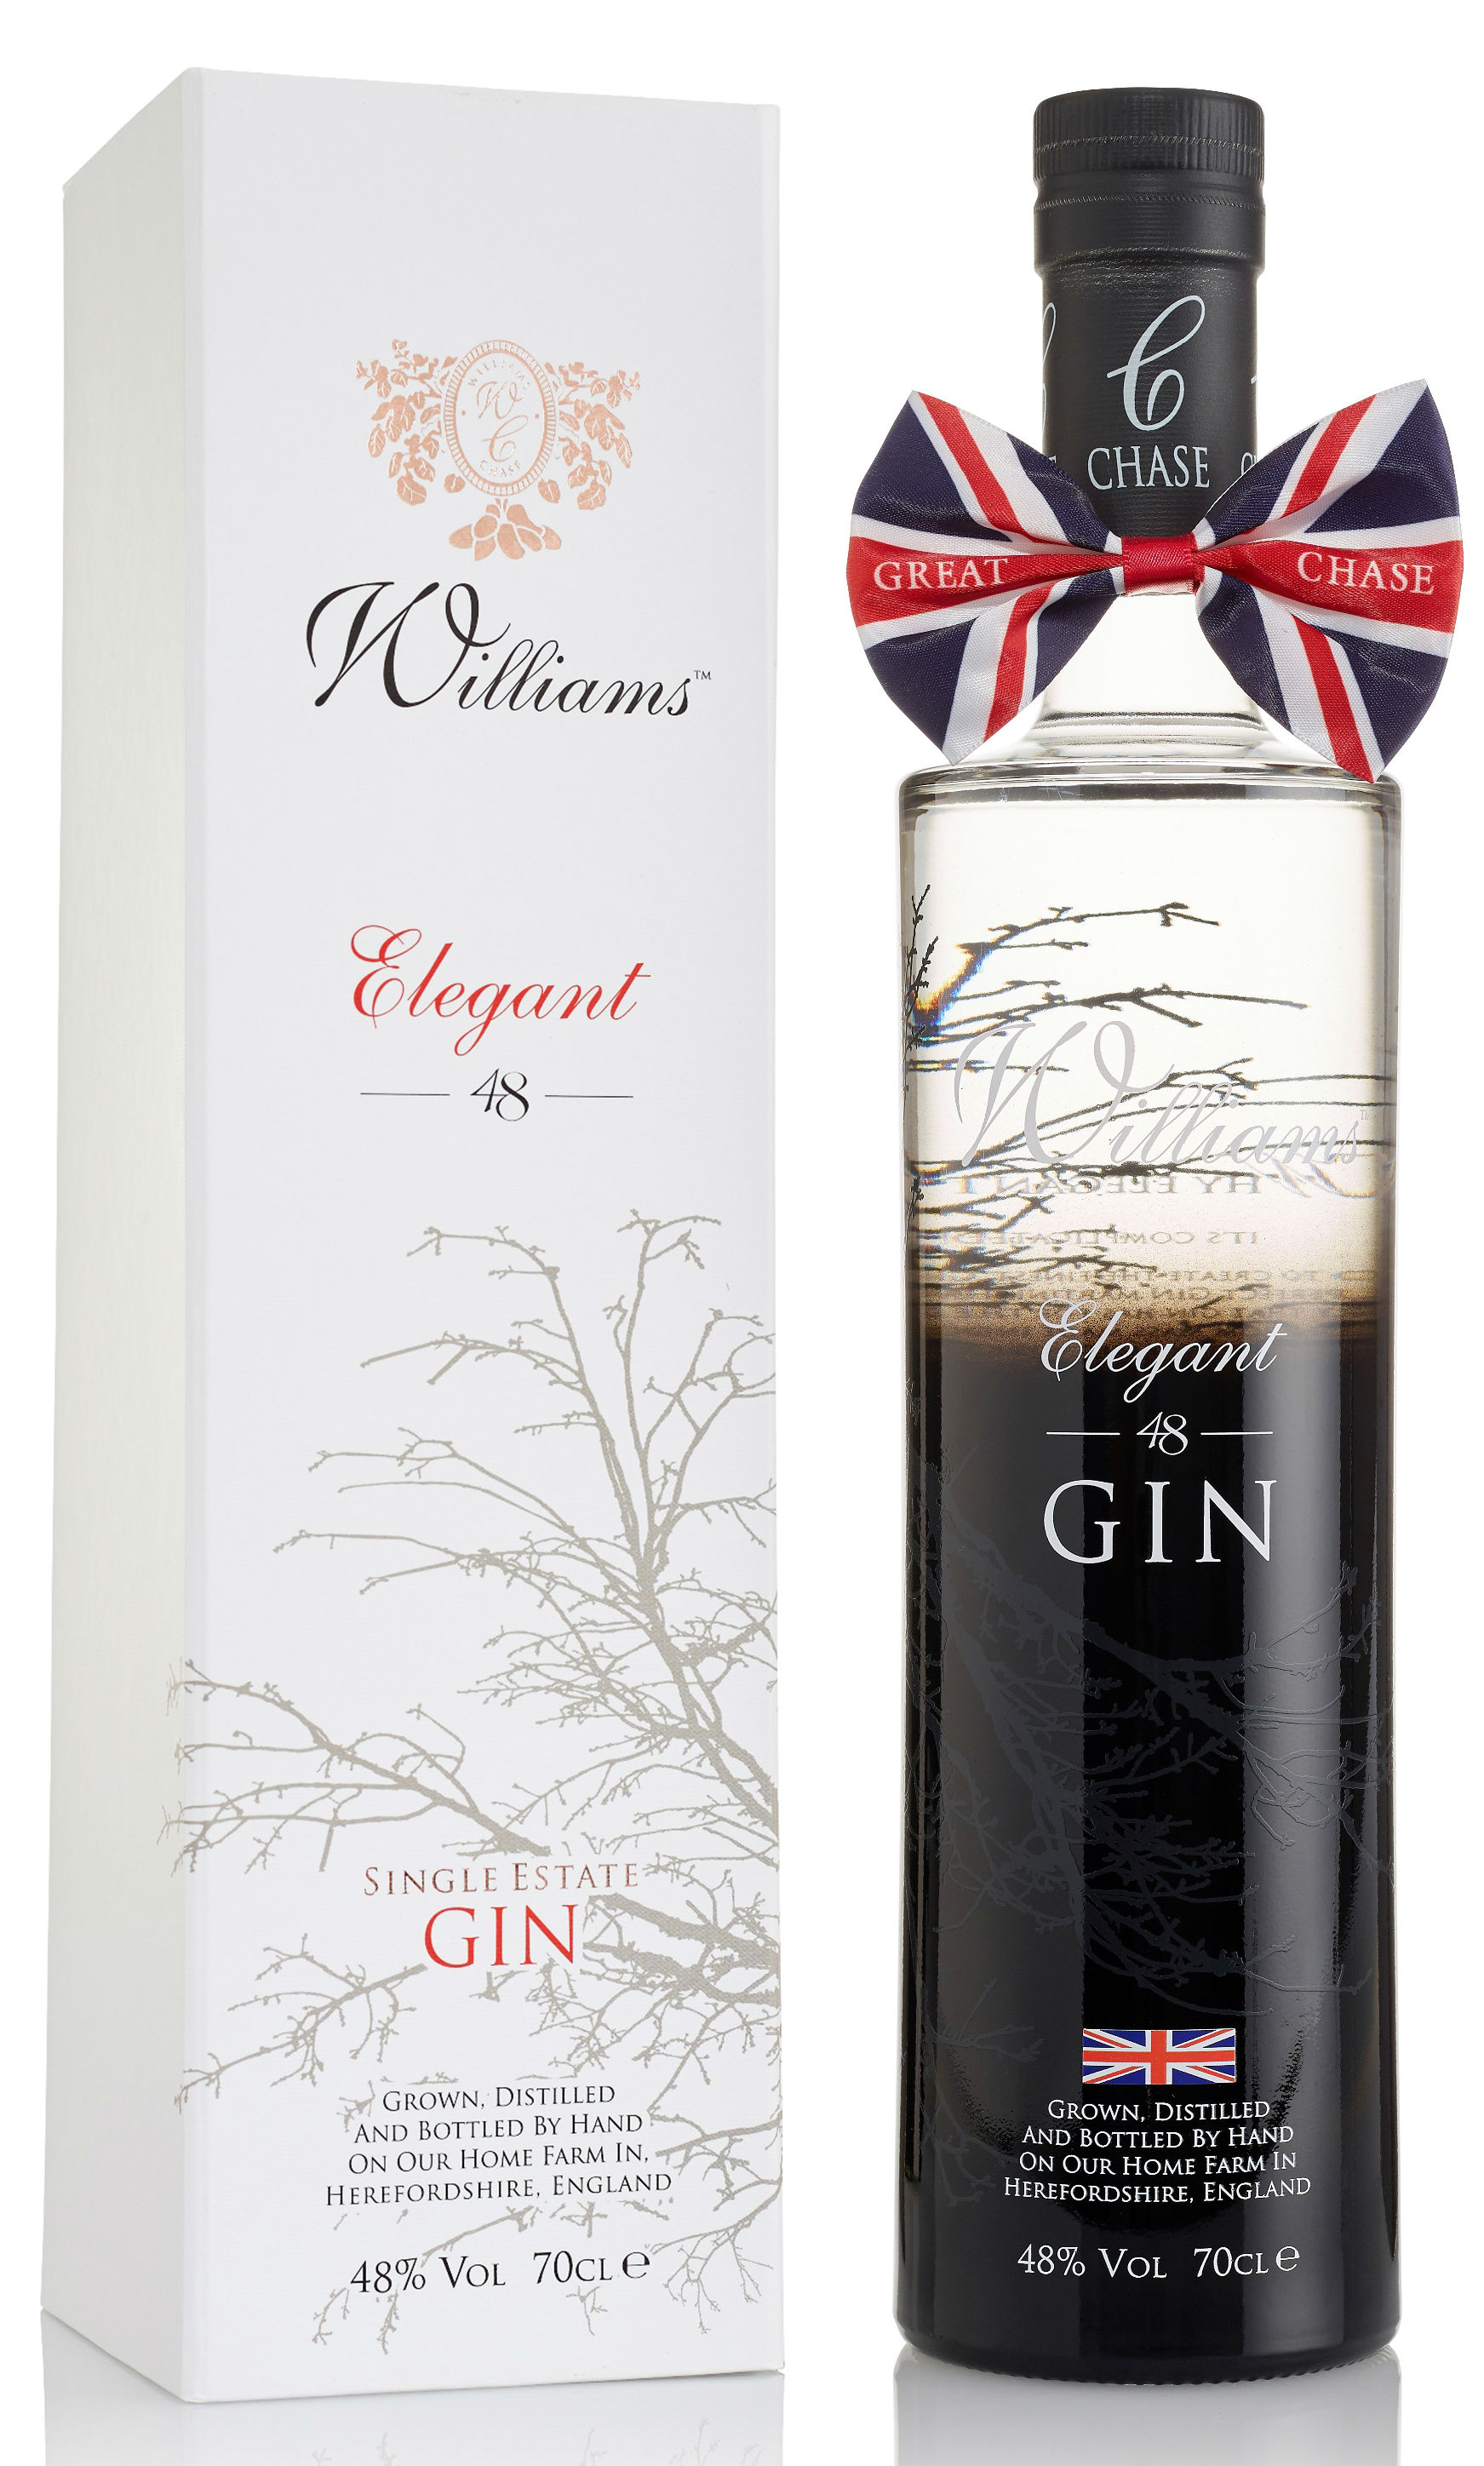 Image of Chase Distillery - Elegant Crisp Gin in white gift box 70cl Bottle